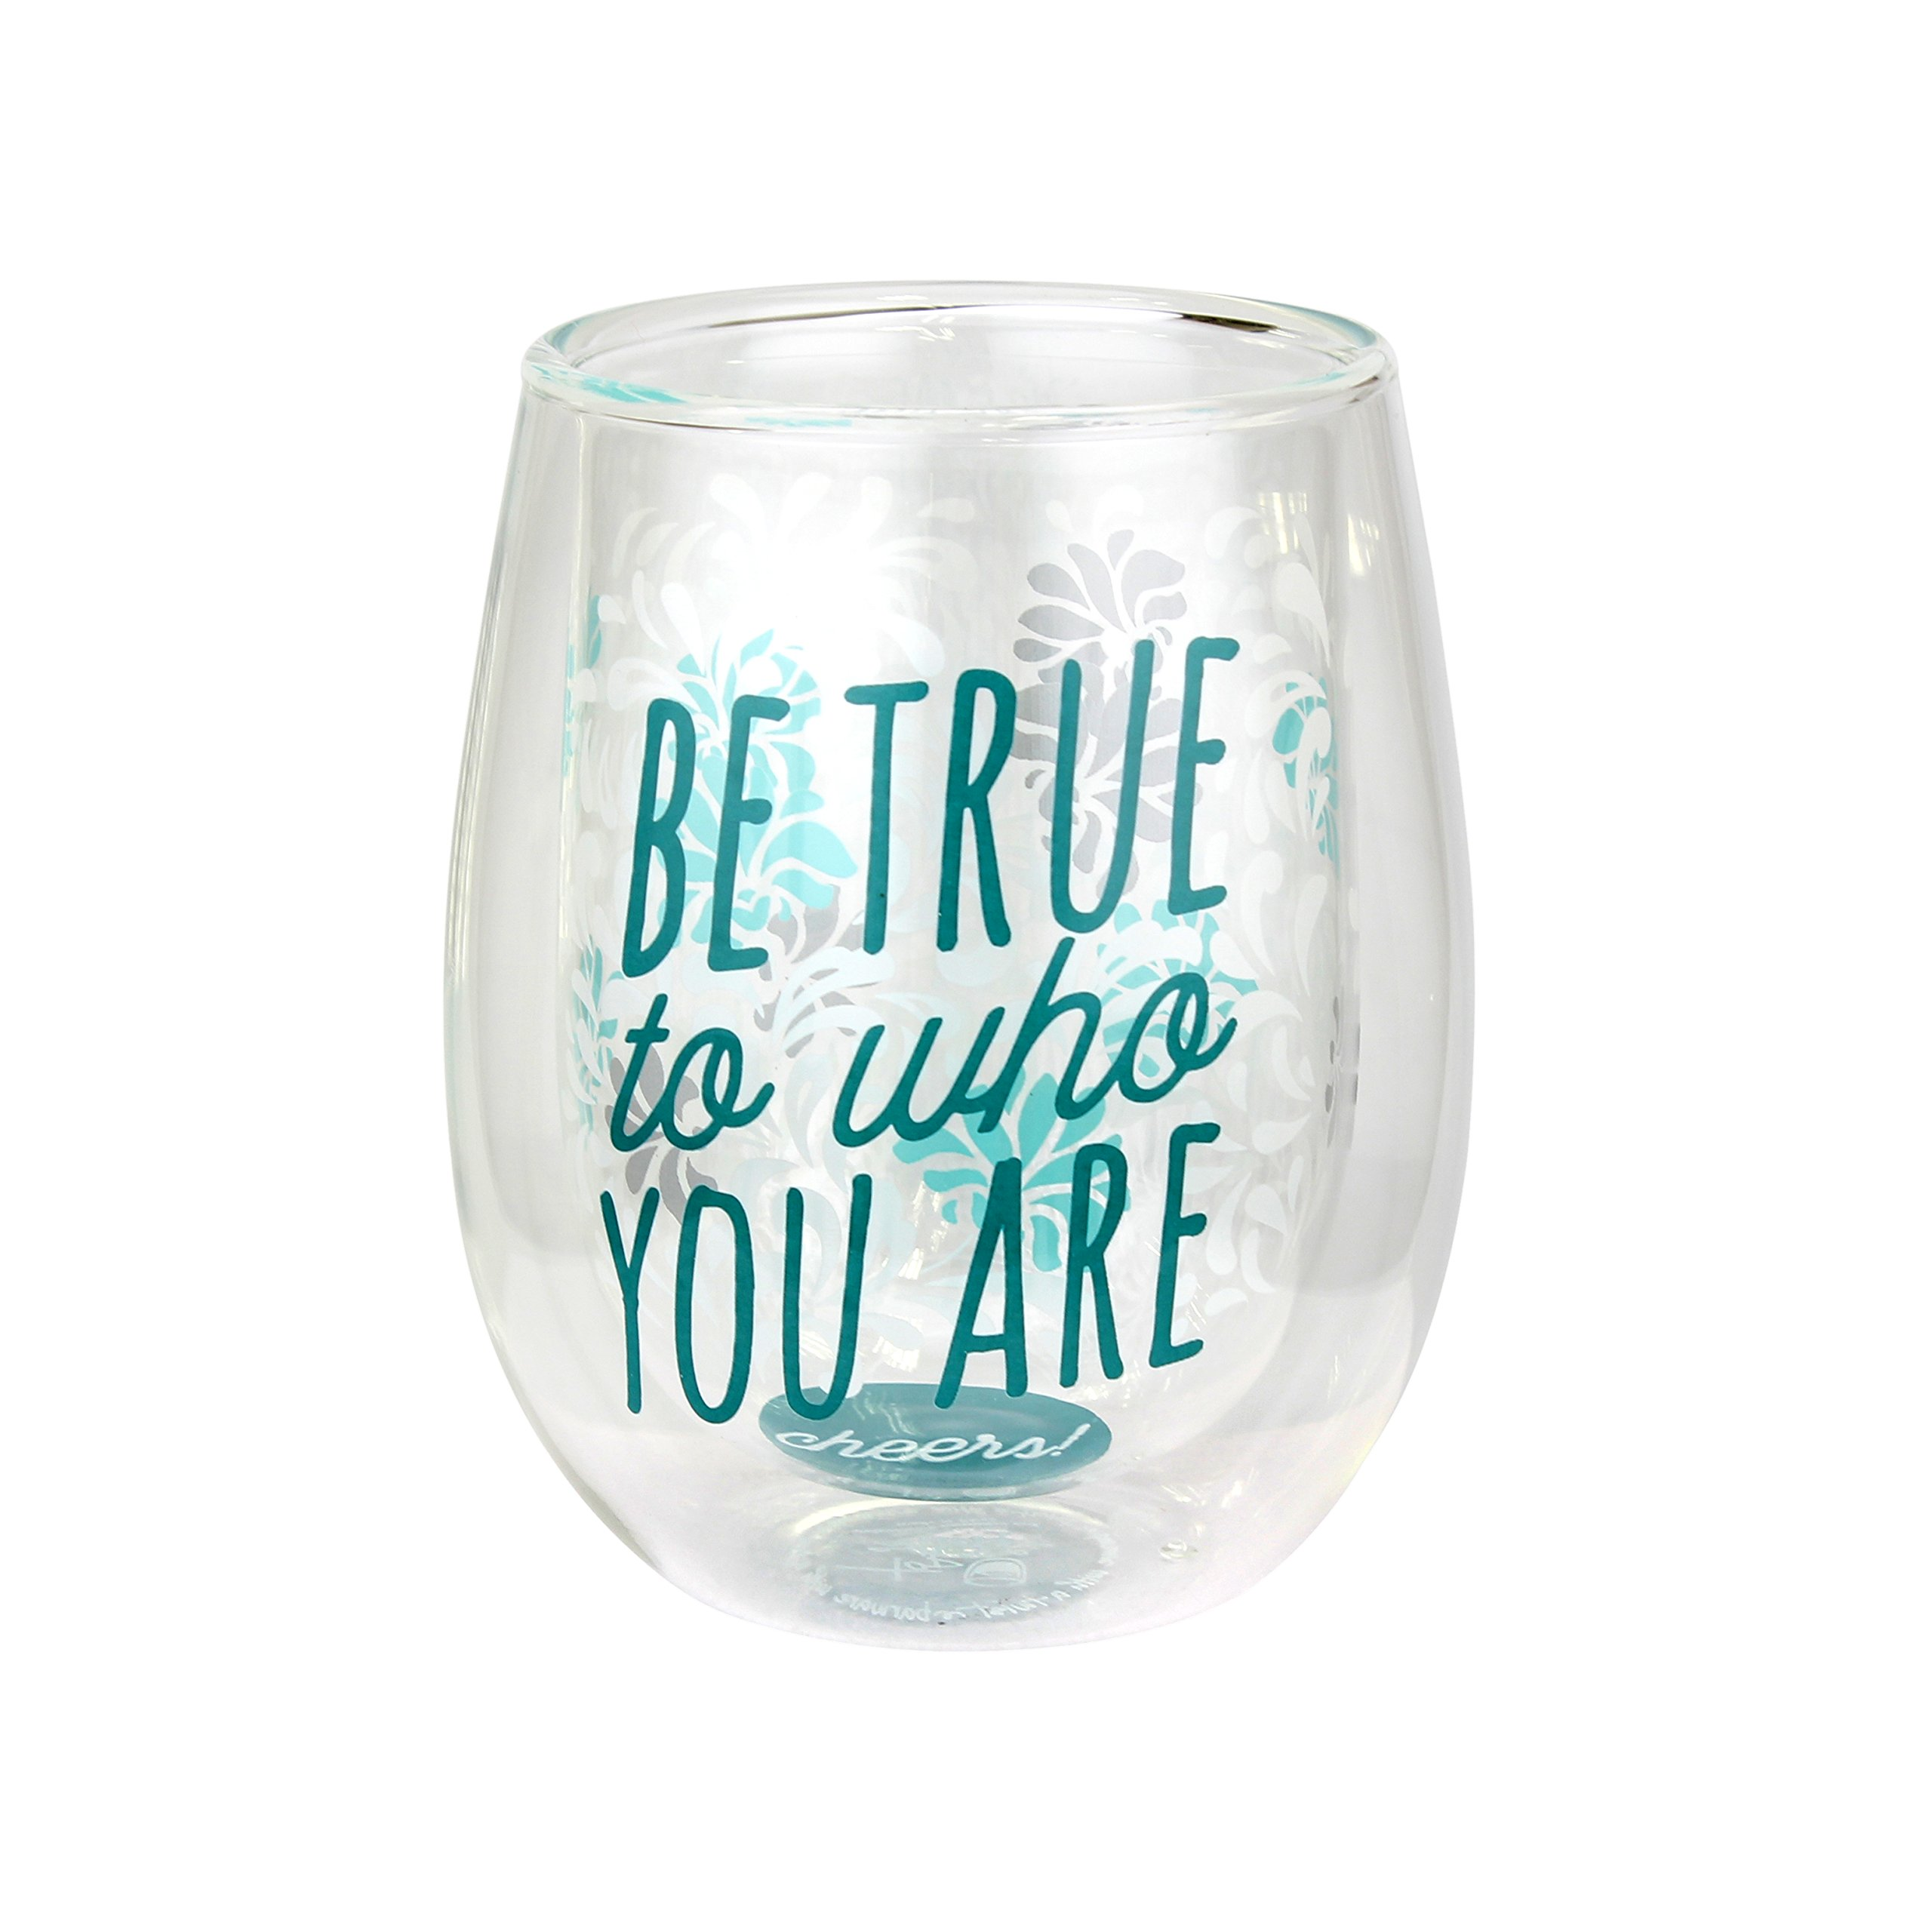 Top Shelf Inspirational '' Be True to Who You Are'' Double Wall Stemless Wine Glass ; Thoughtful Gift Ideas for Friends and Family ; For Red or White Wine